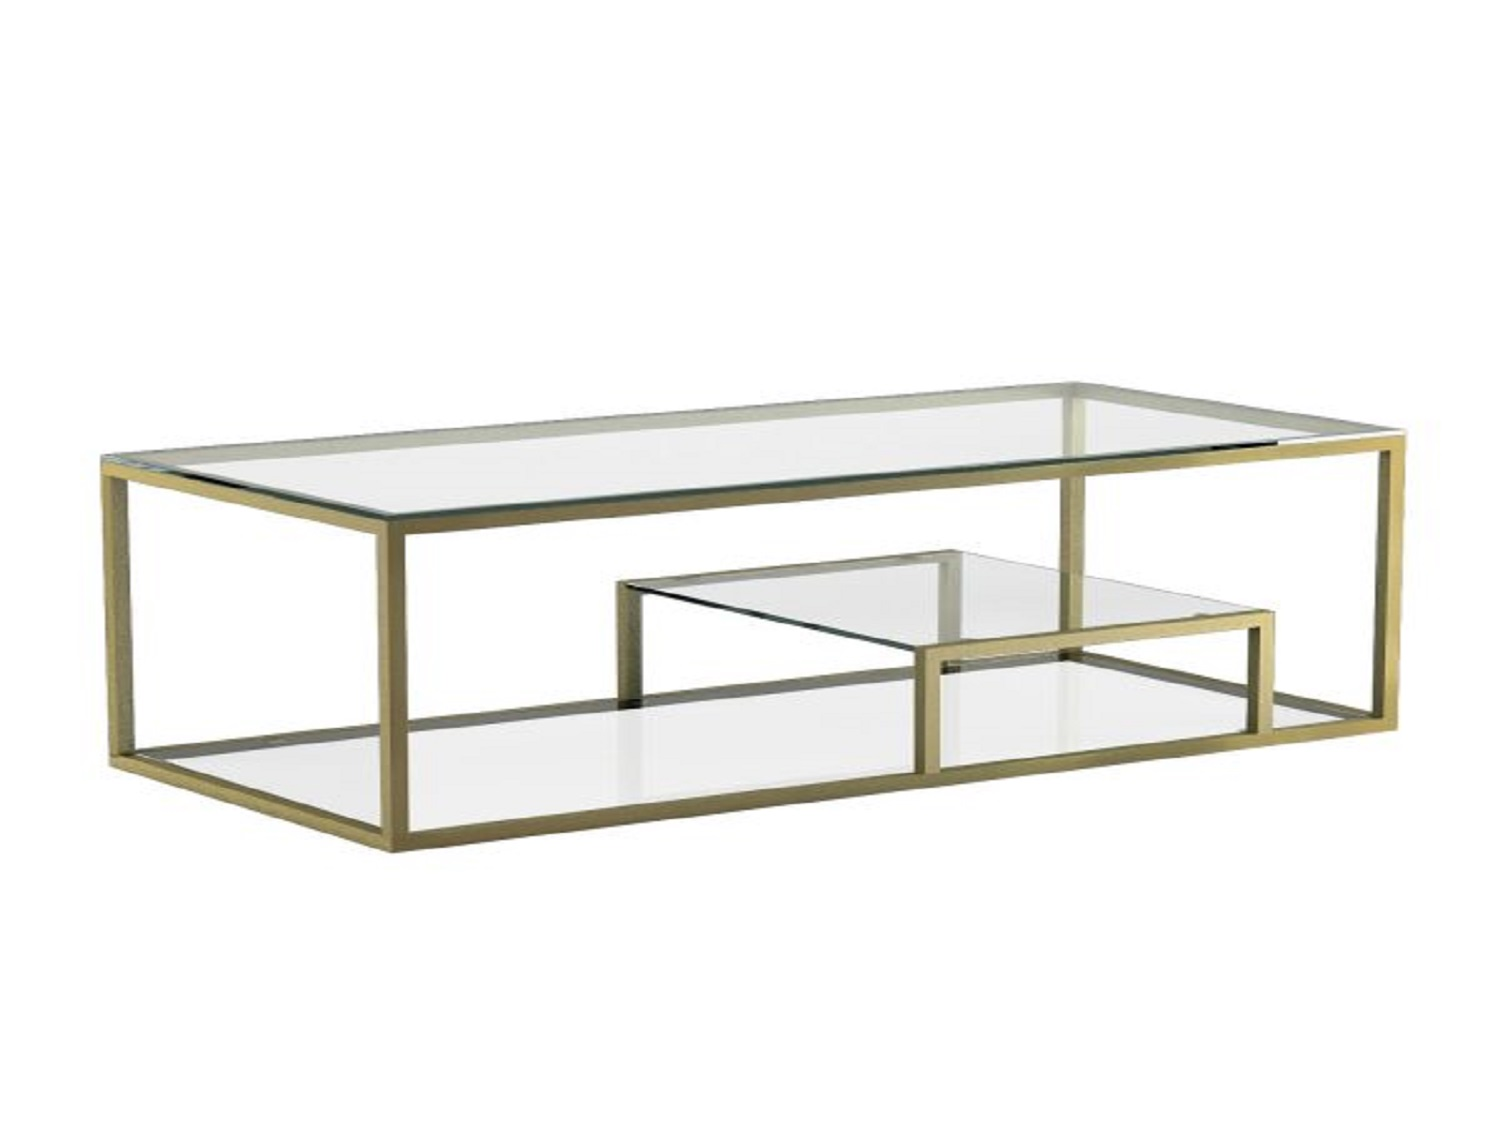 Barolo Gold Coffee Table, 101183, Coffee Table by Midha Furniture to Brampton, Mississauga, Etobicoke, Toronto, Scraborough, Caledon, Oakville, Markham, Ajax, Pickering, Oshawa, Richmondhill, Kitchener, Hamilton and GTA area